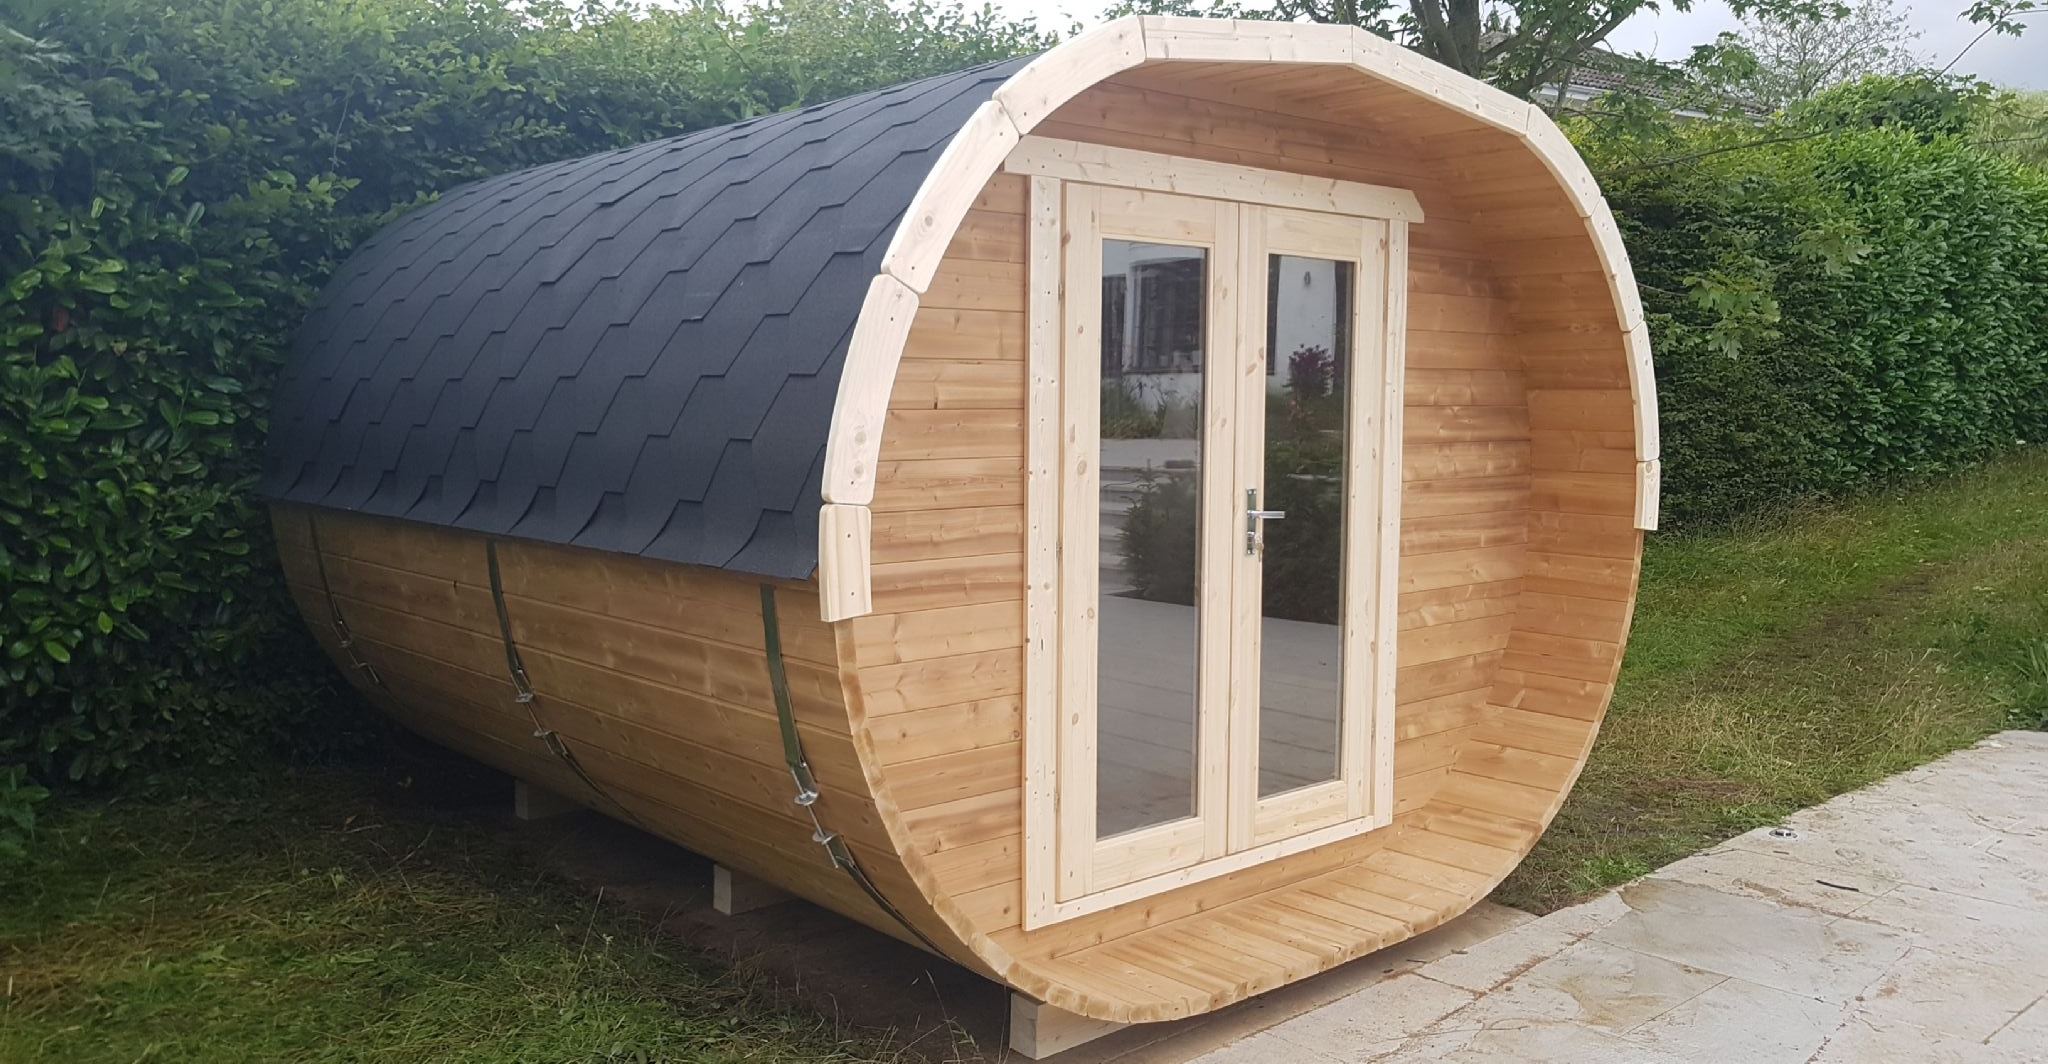 Oval camping pod 42mm walls delivered by Aardvark joinery UK wide